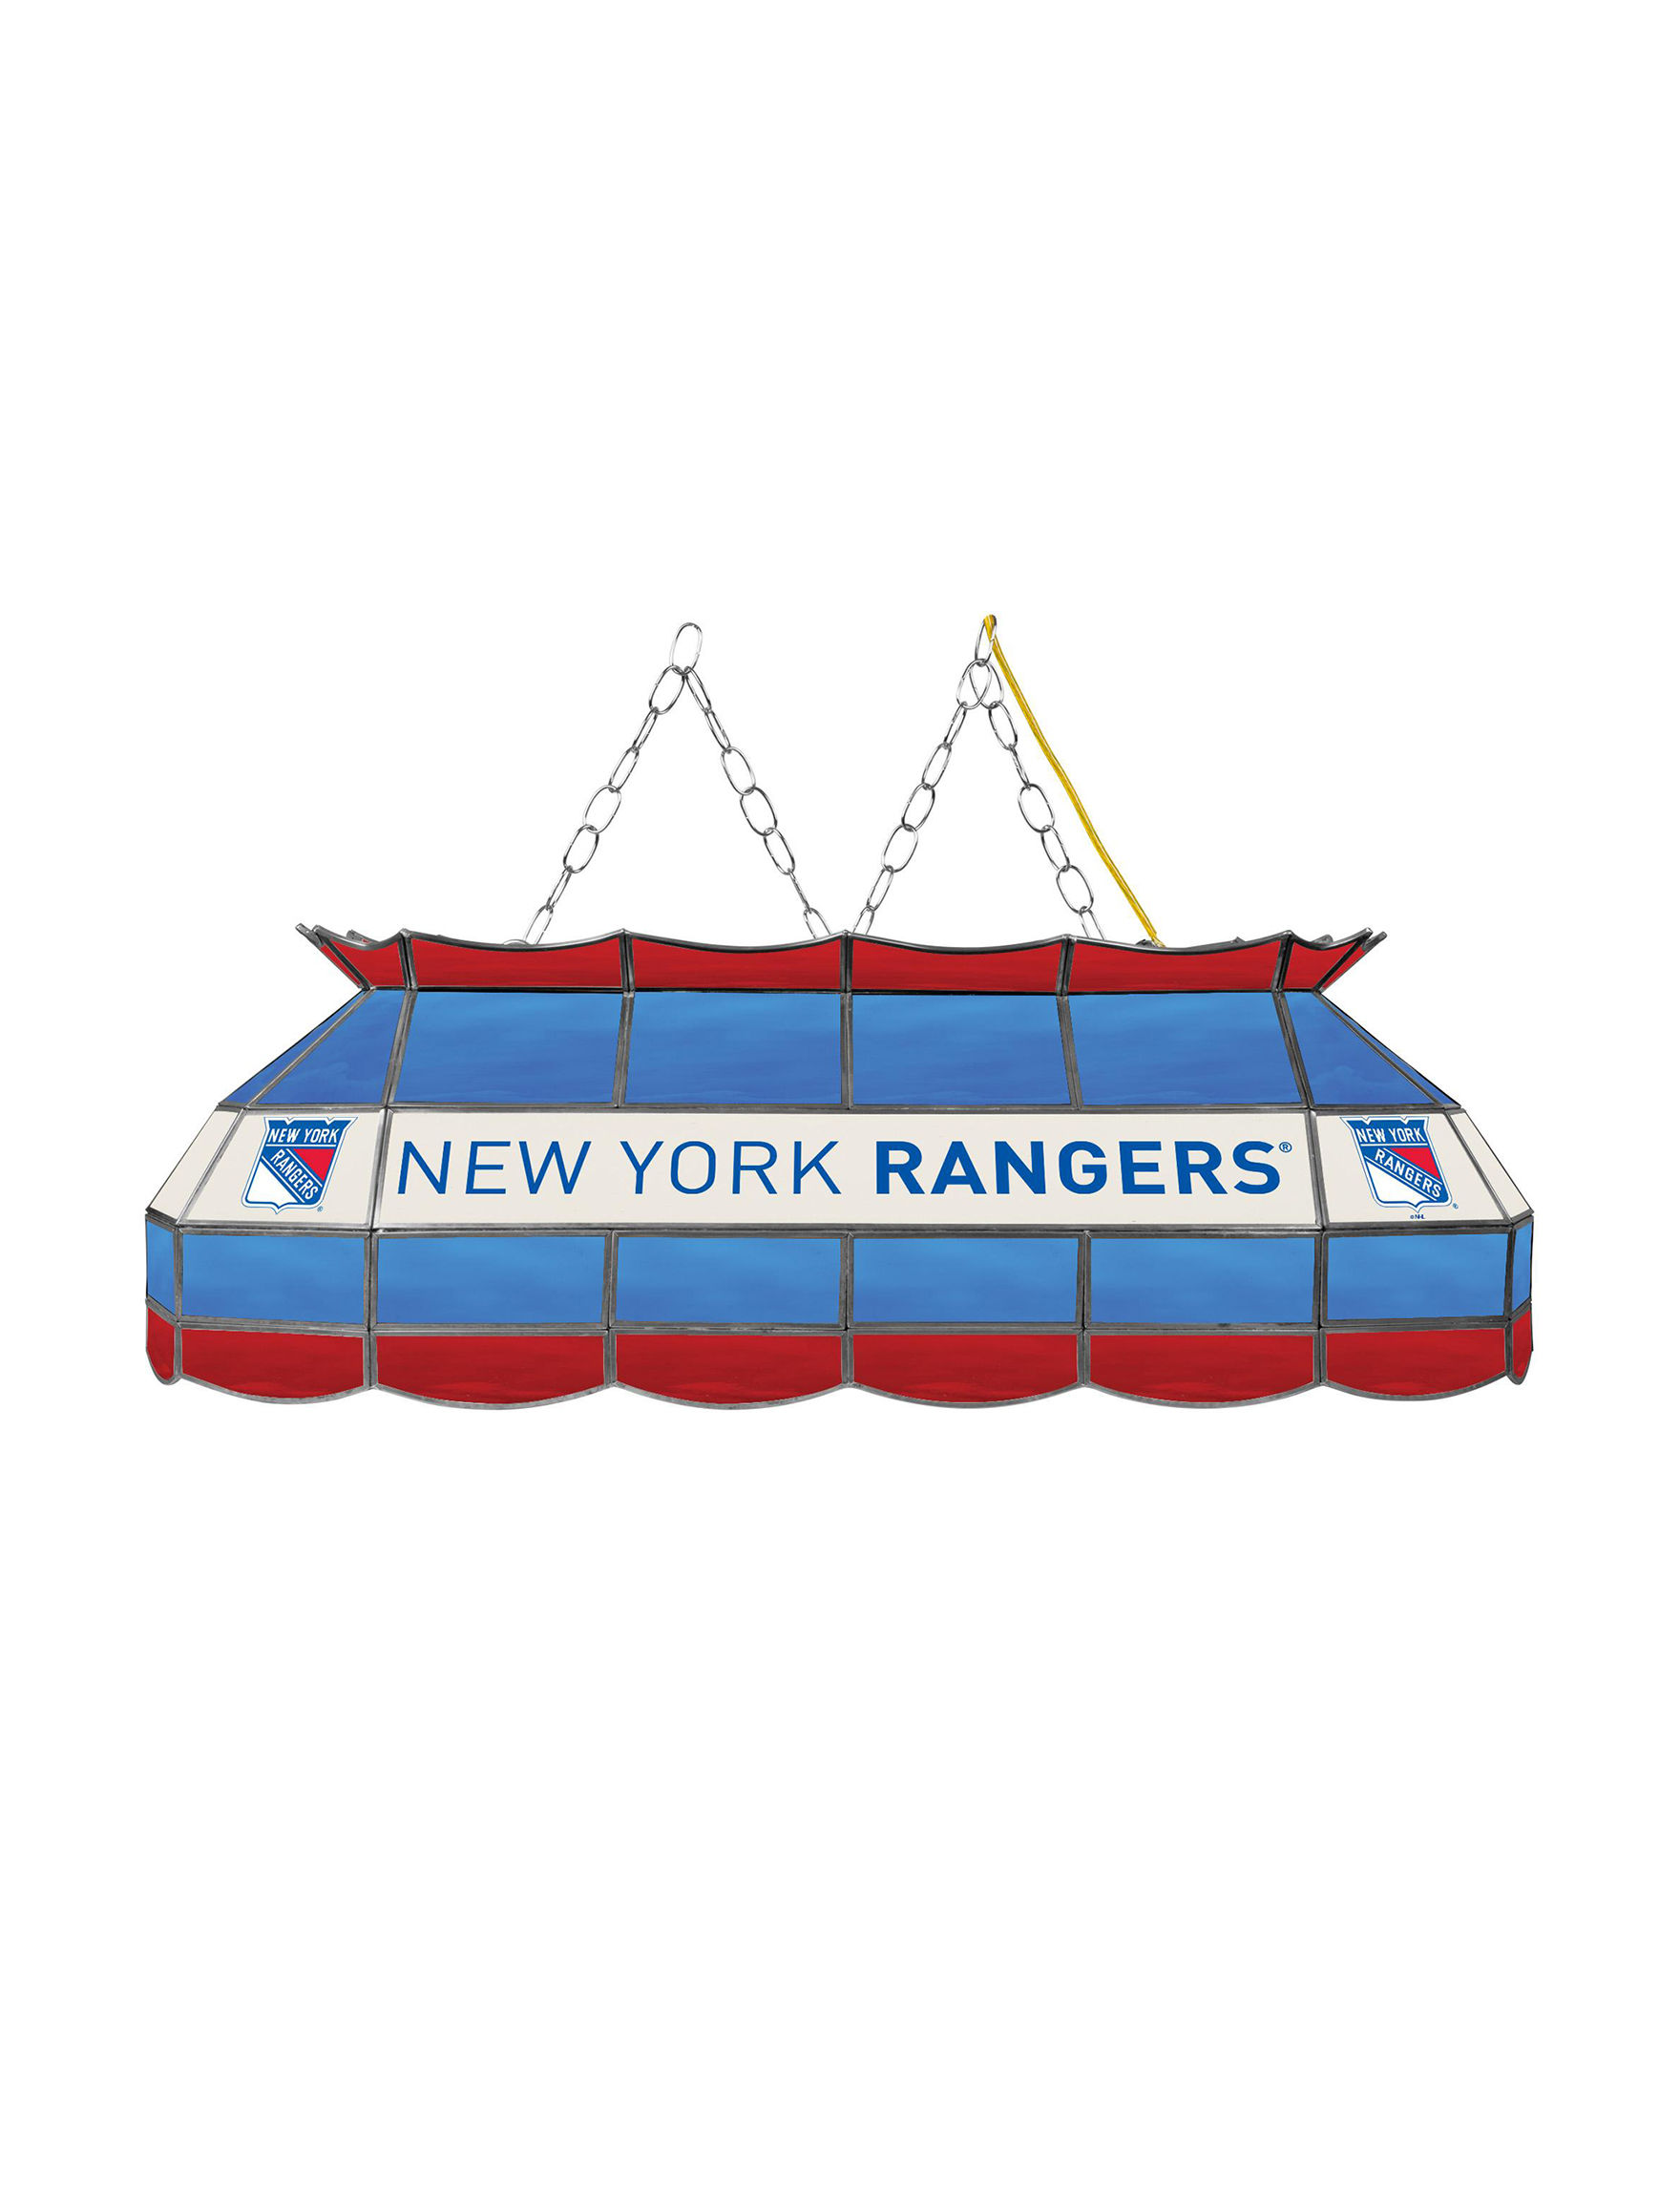 NHL Red / White / Blue Chandeliers Lights & Lanterns Lighting & Lamps